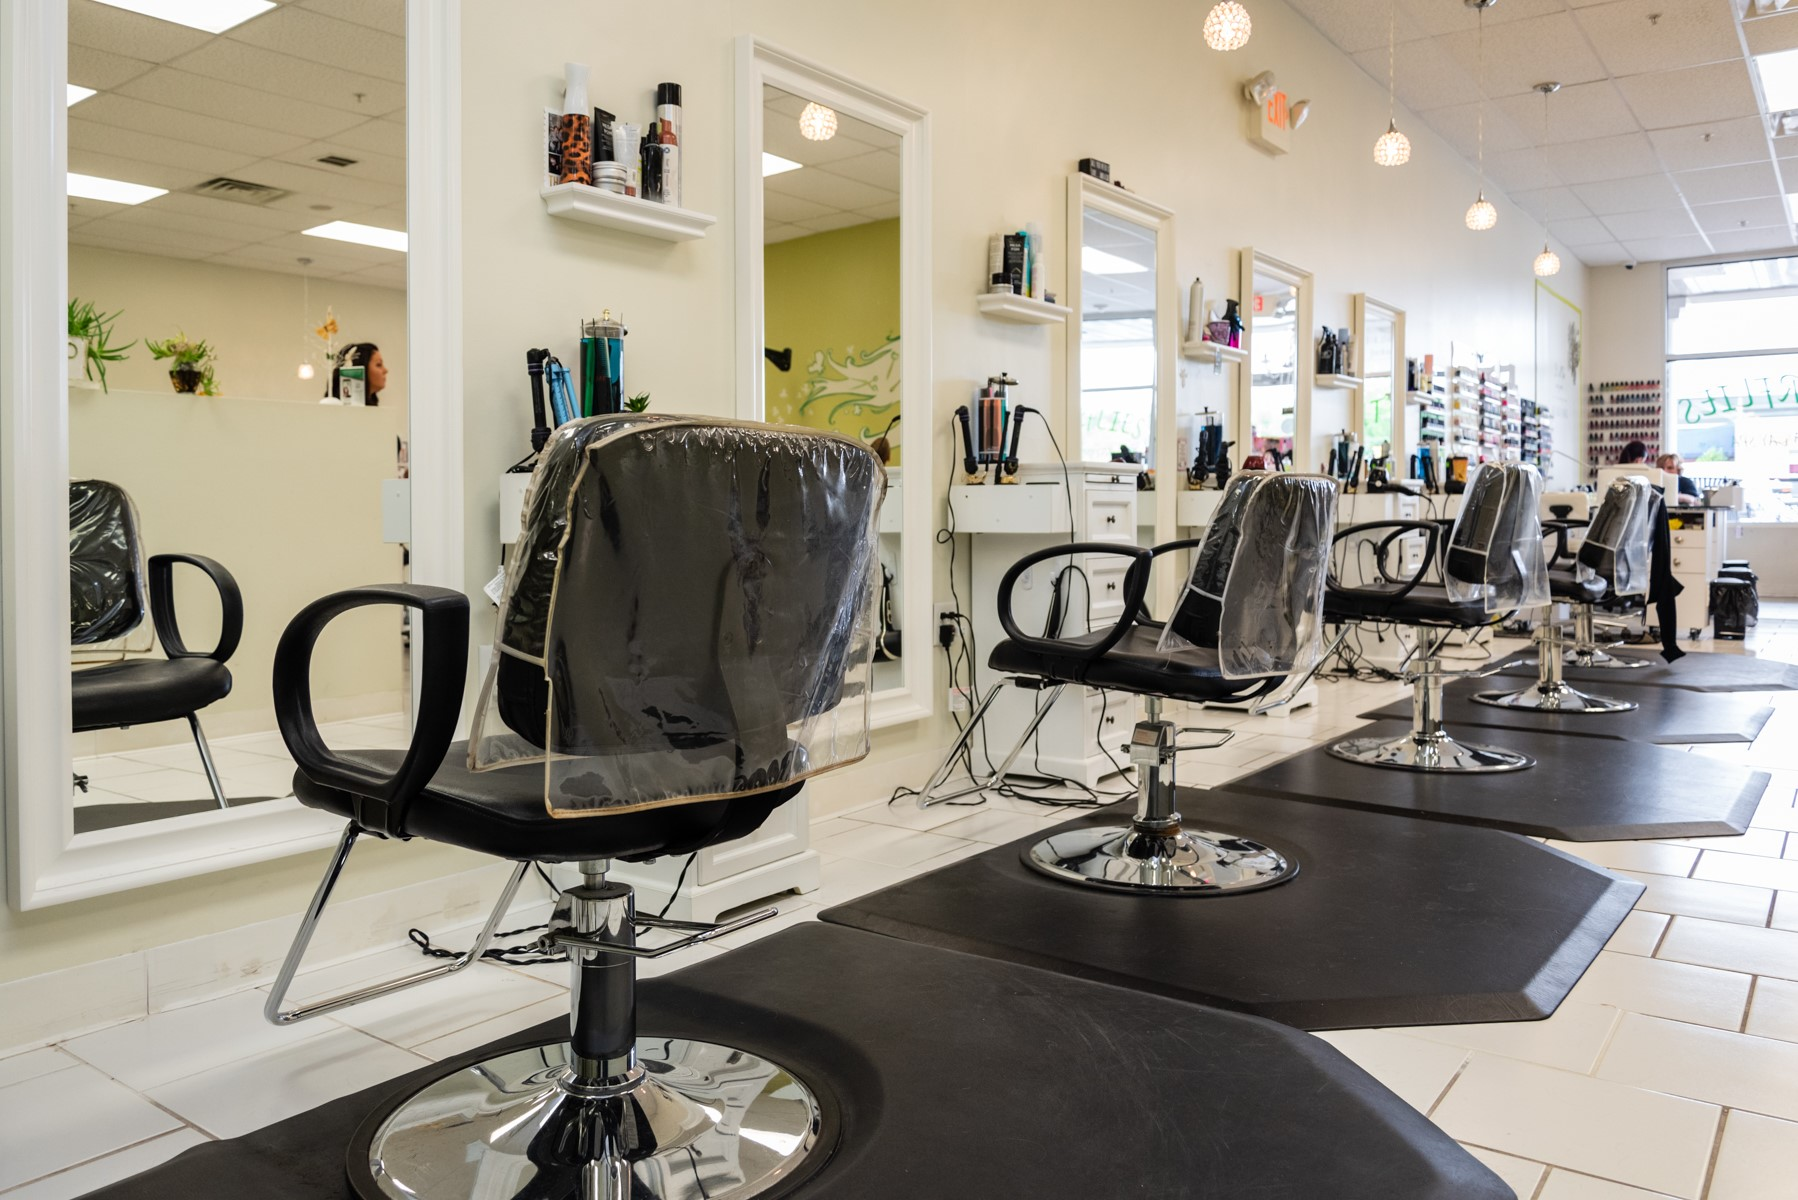 Photo of a salon with barber chairs covered with plastic and a wall of nail polish in Central, New Jersey.